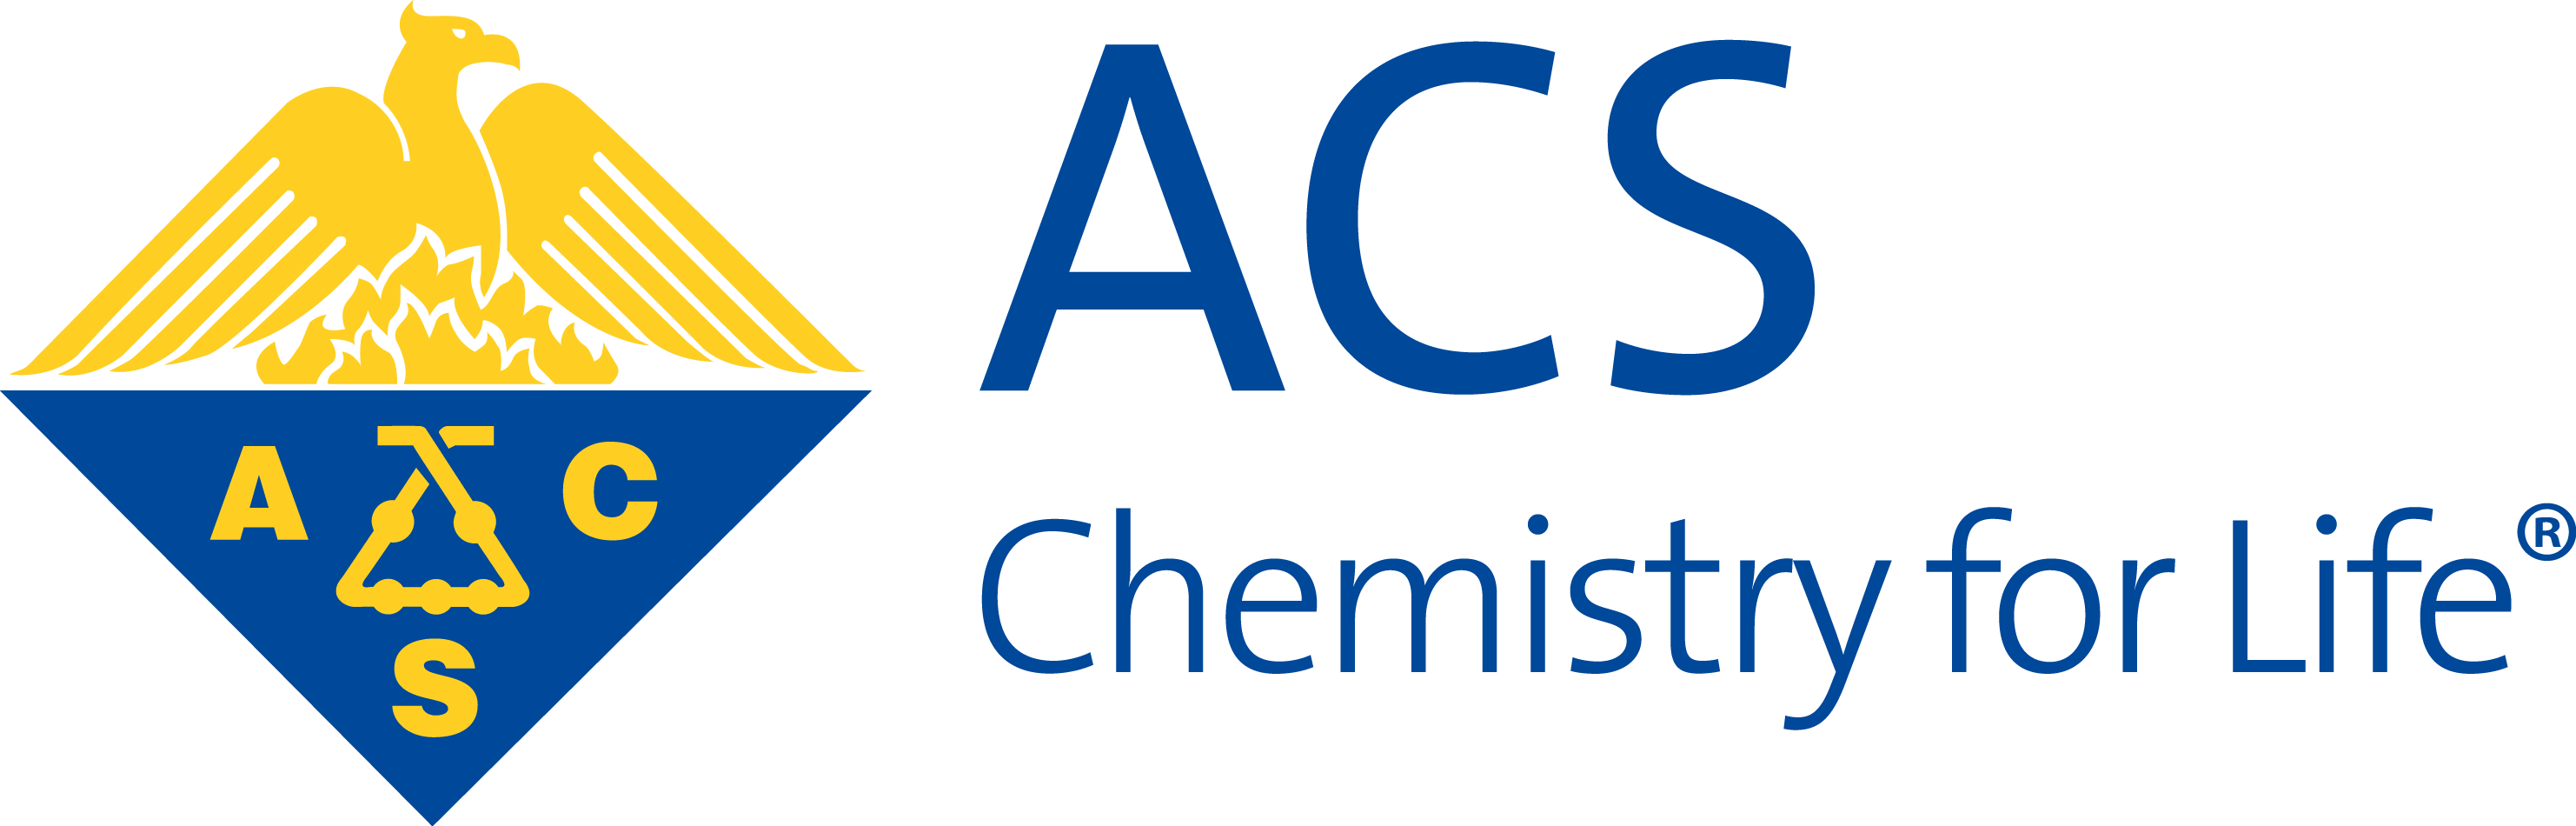 ACS Logo   American Chemical Society png